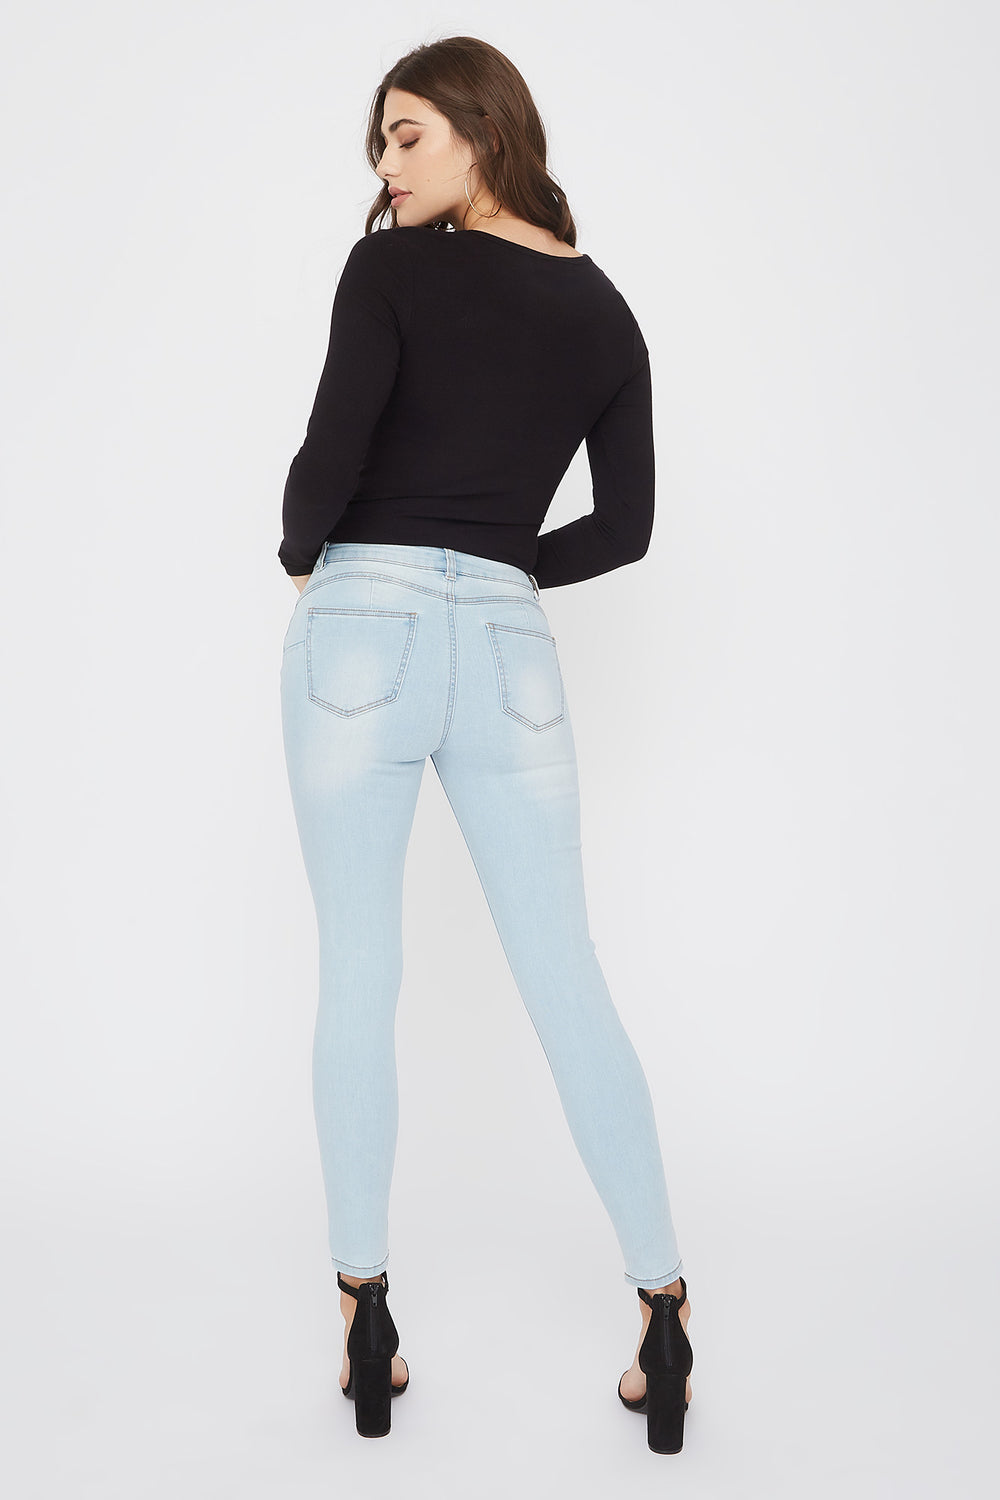 Low-Rise Push-Up Light Wash Distressed Skinny Jean Light Denim Blue